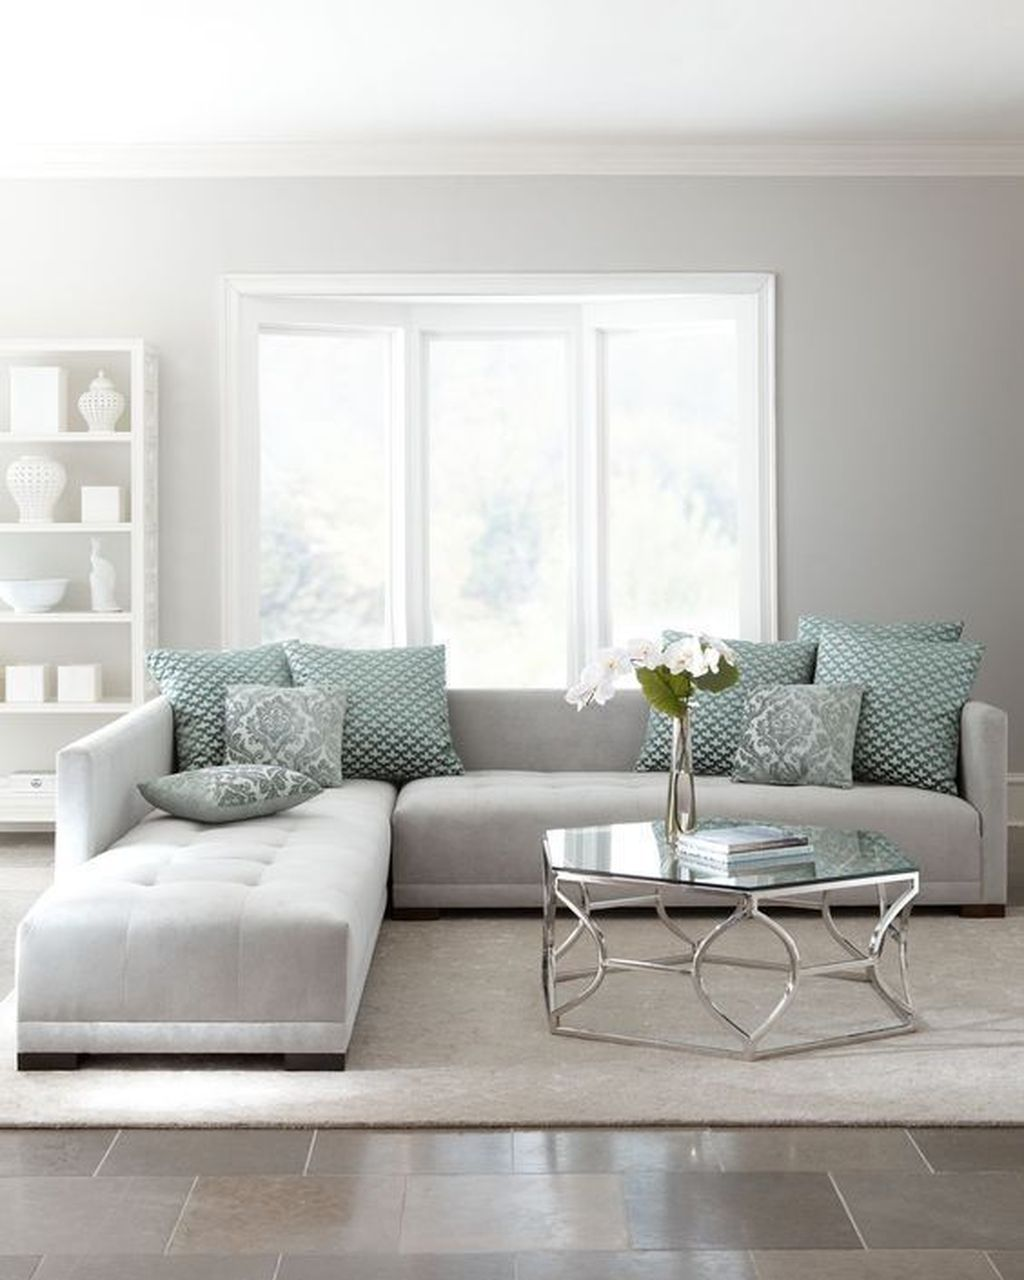 The Best Curved Sofa For Living Room Layout Ideas 20